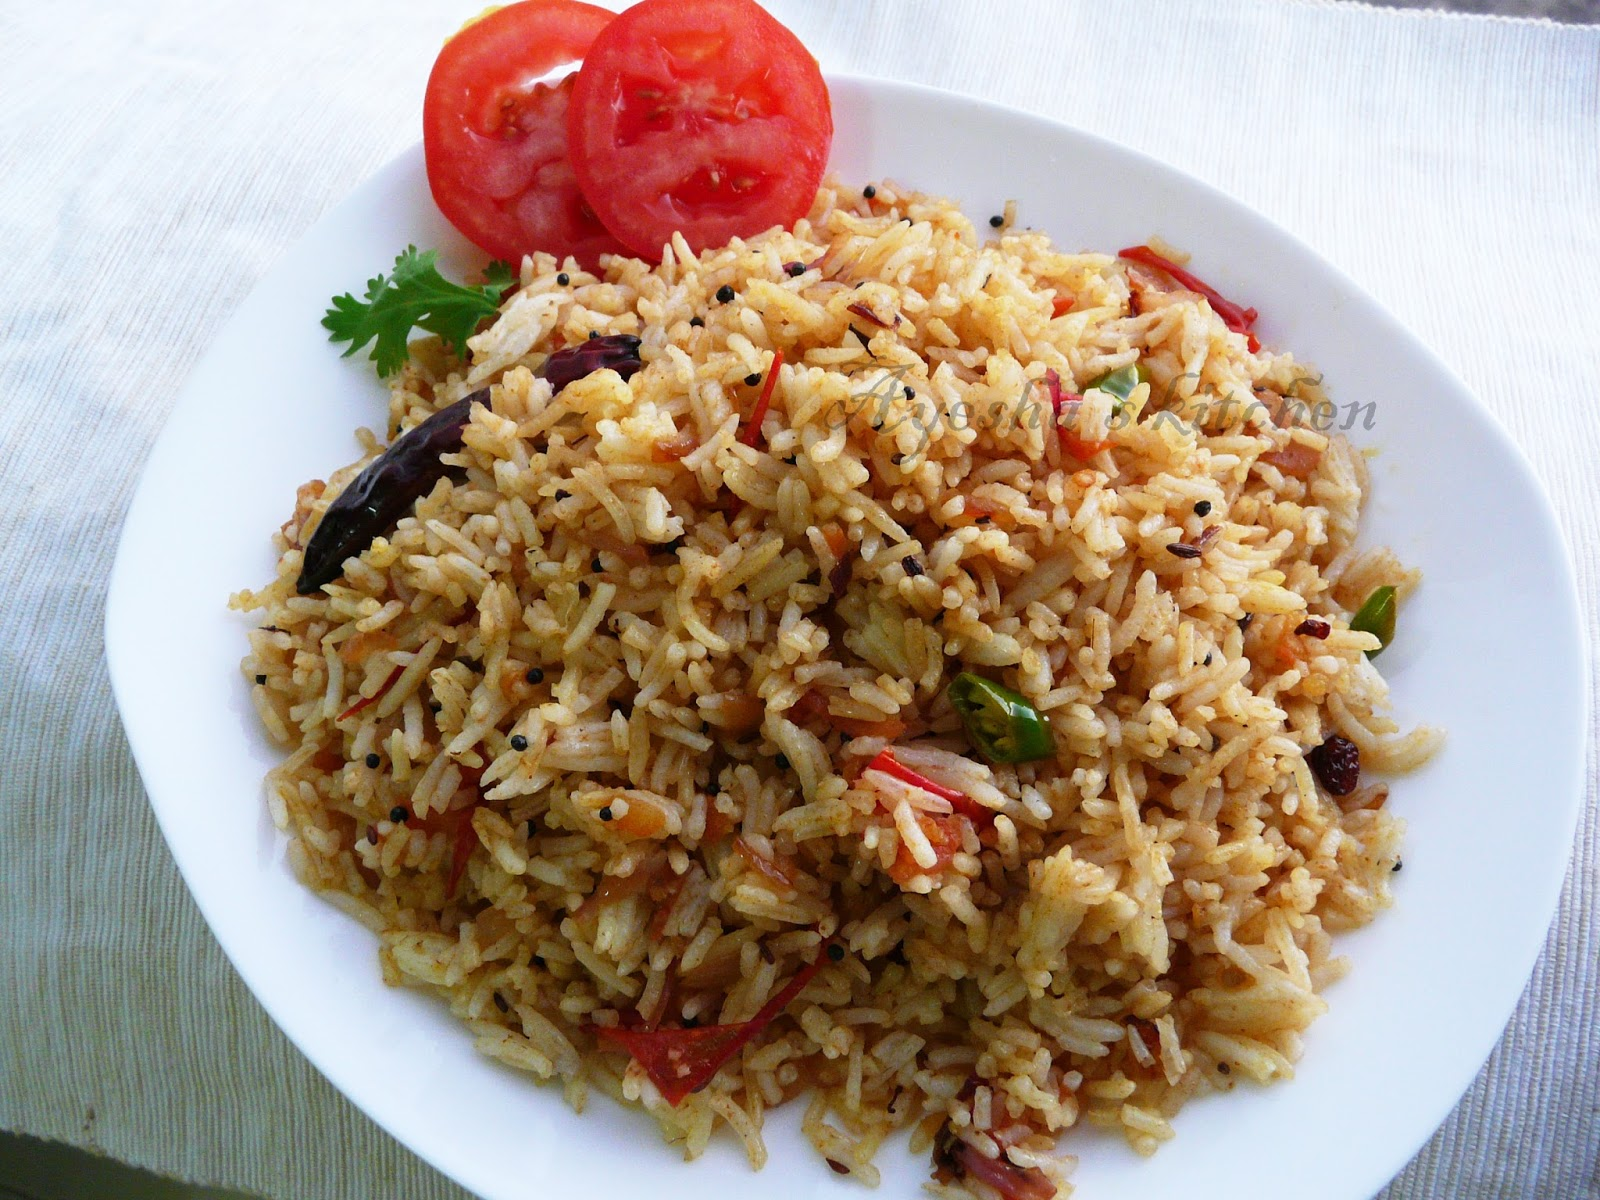 Tomato rice recipe how to make tomato rice thakkali sadam here is my recipe of tomato ricetomato sadam which i inspired from dessana recipe book loved her rice varieties and hope i can try and share her other ccuart Choice Image